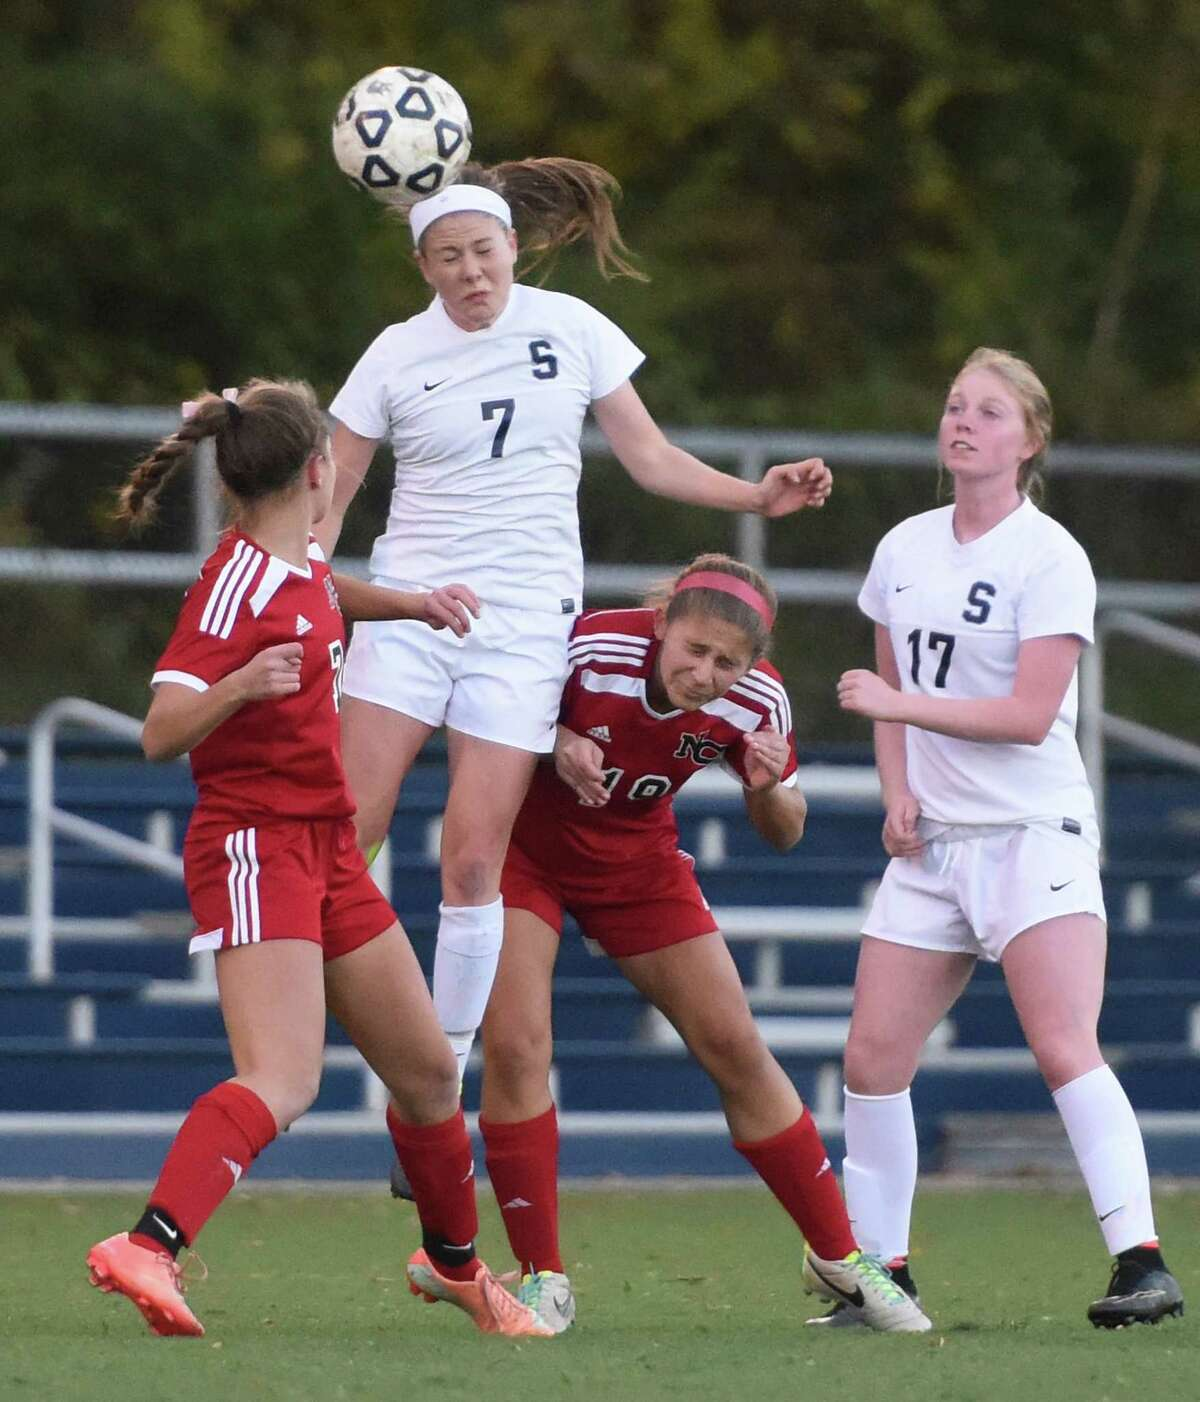 Staples' Chloe Rosenfield (7) goes up for a header against New Canaan defenders Abigail Farley, left, and Katharine Kuchinski as teammate Margaret Walsh (17) watches from behind in No. 4 Staples' 4-0 win over No. 8 New Canaan in the FCIAC high school girls soccer semifinal game at Wilton High School in Wilton, Conn. Monday, Oct. 27, 2014.